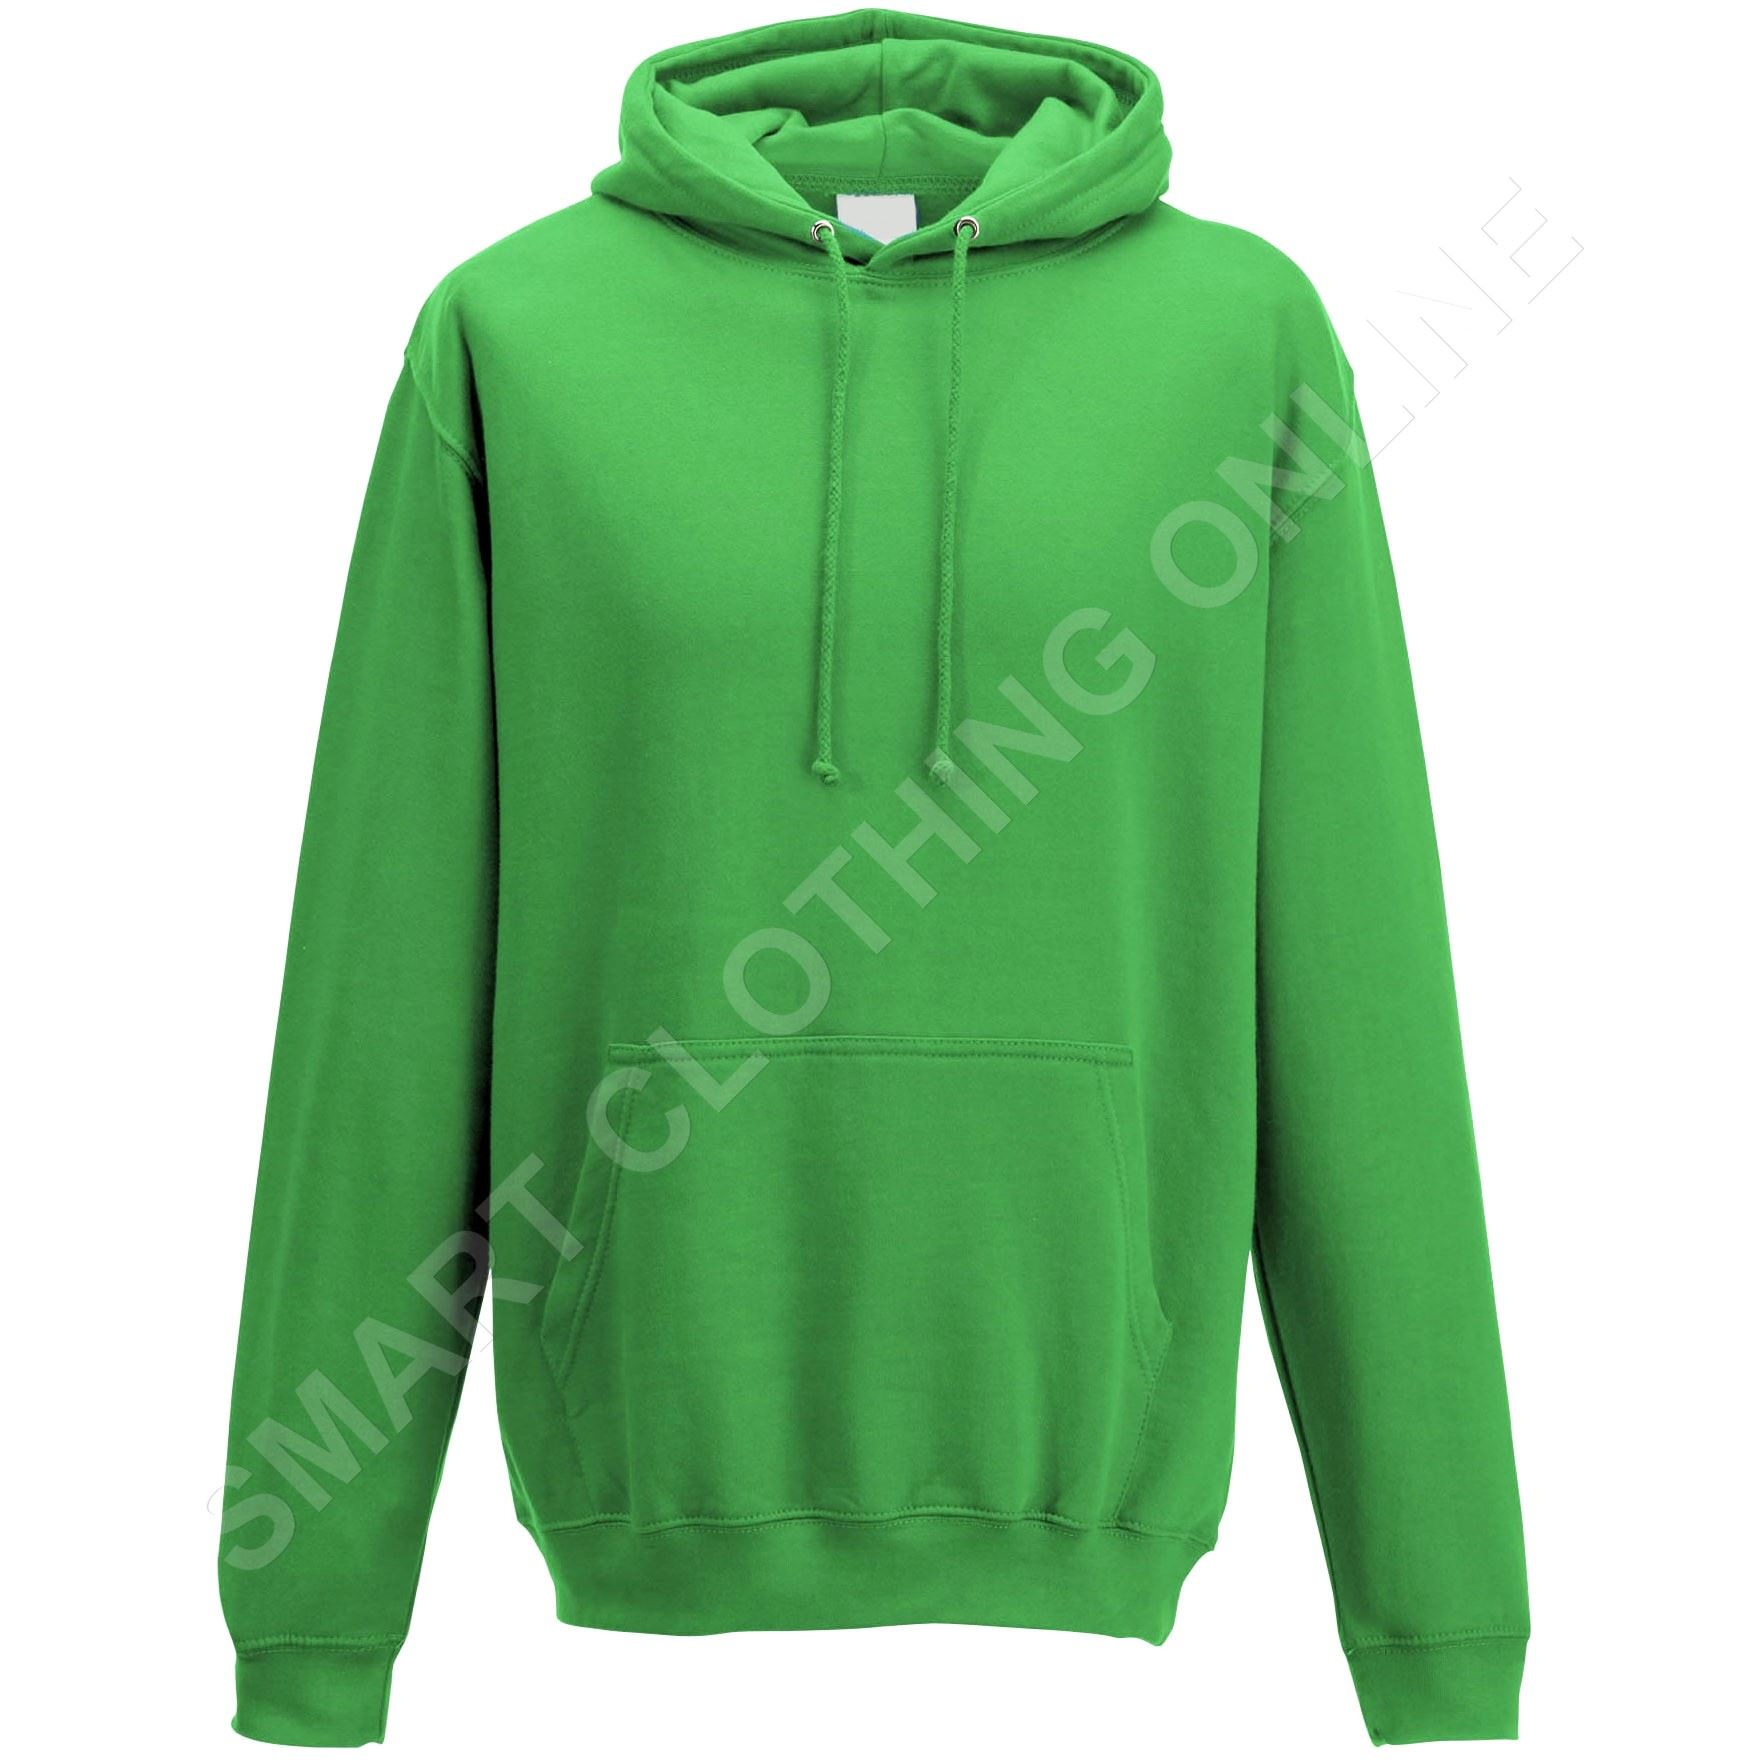 In our selection of sweatshirts for men and hoodies for men, we give you the power to control your level of zip by offering a variety of styles of pullover and full zip up hoodies. If you're feeling a bit buttoned up, try adding half zip sweatshirt or even a quarter zip sweatshirt into your wardrobe rotation.